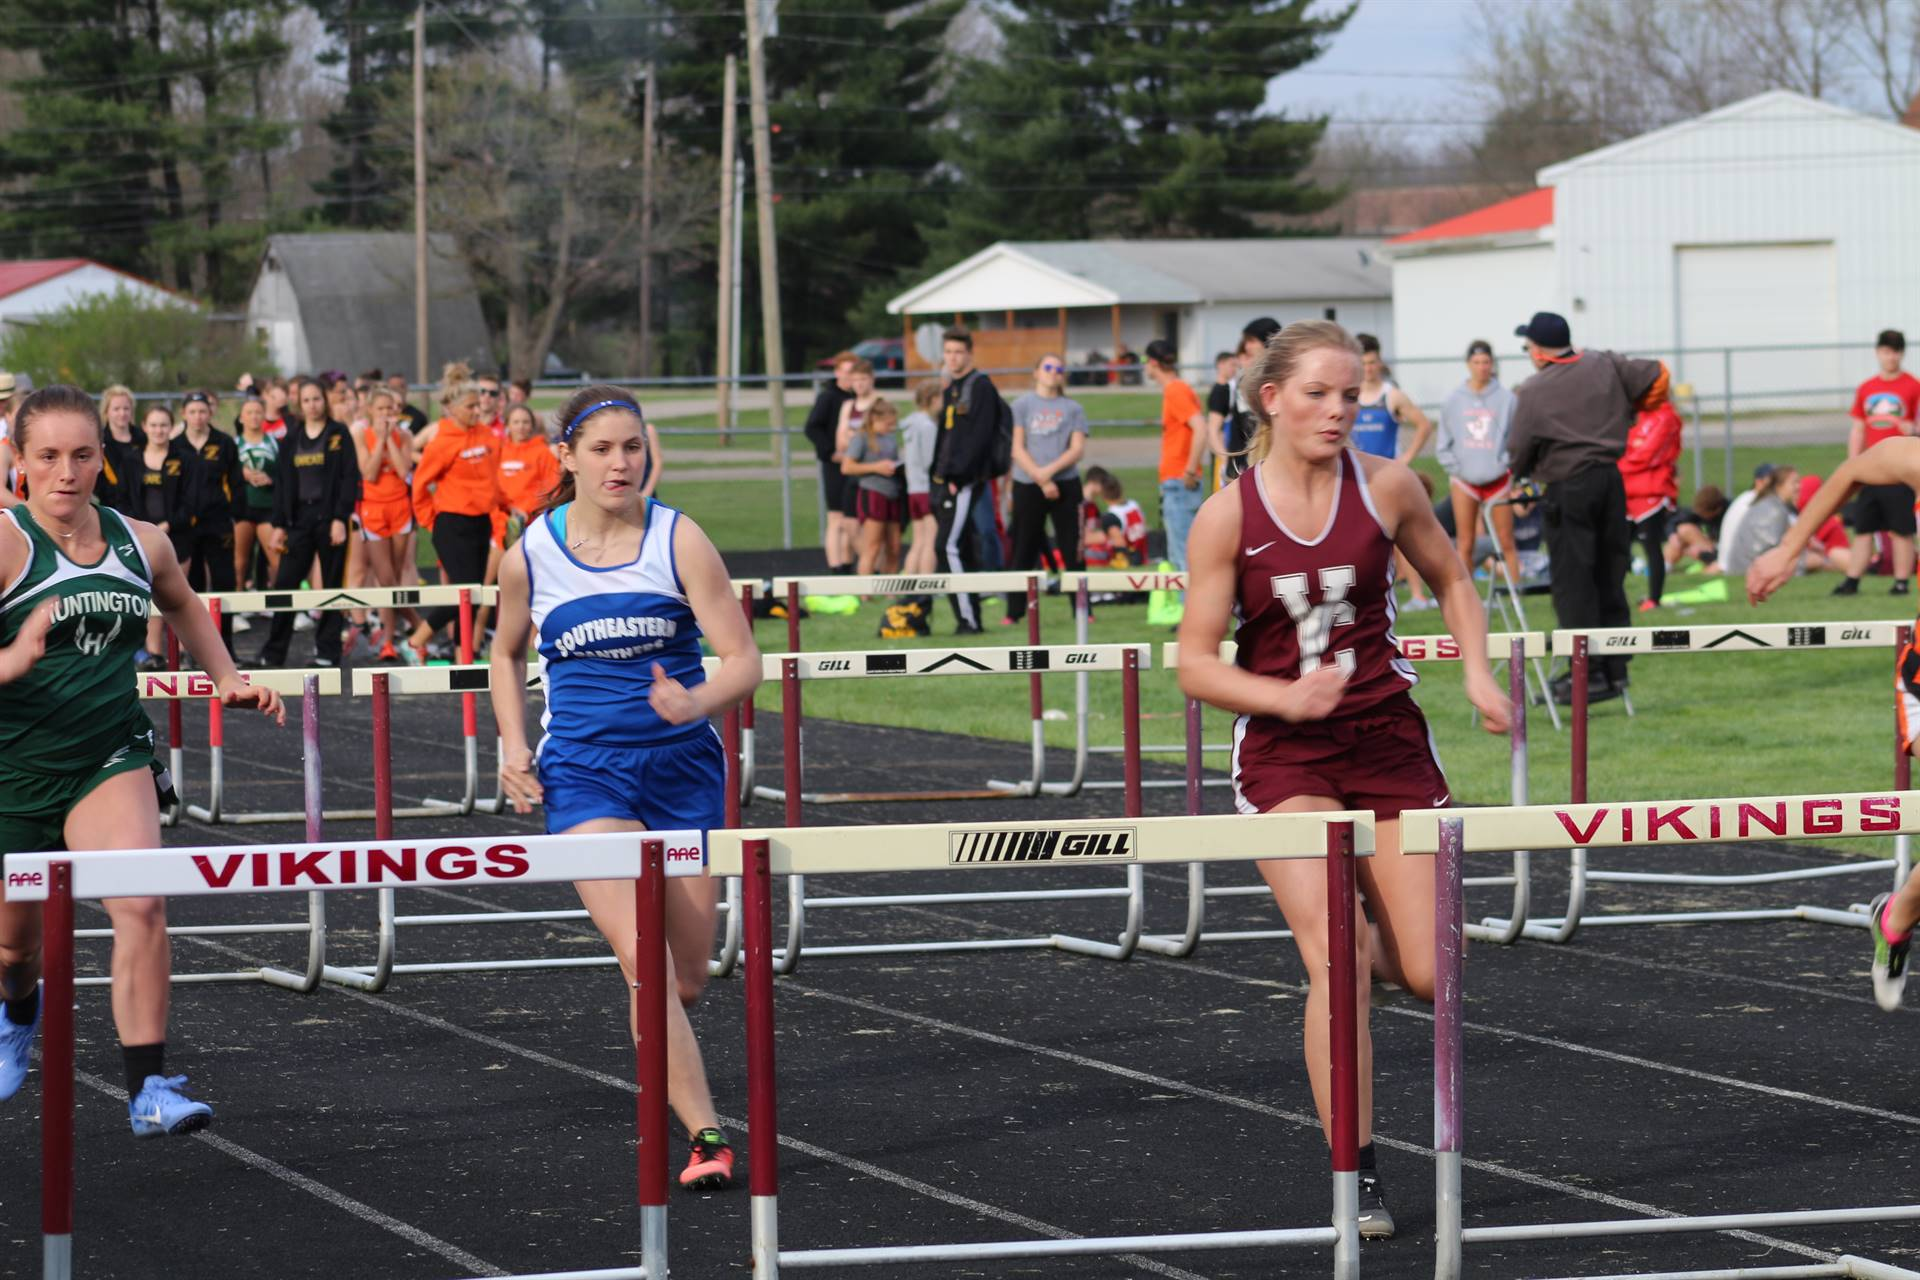 Vinton County Invitational